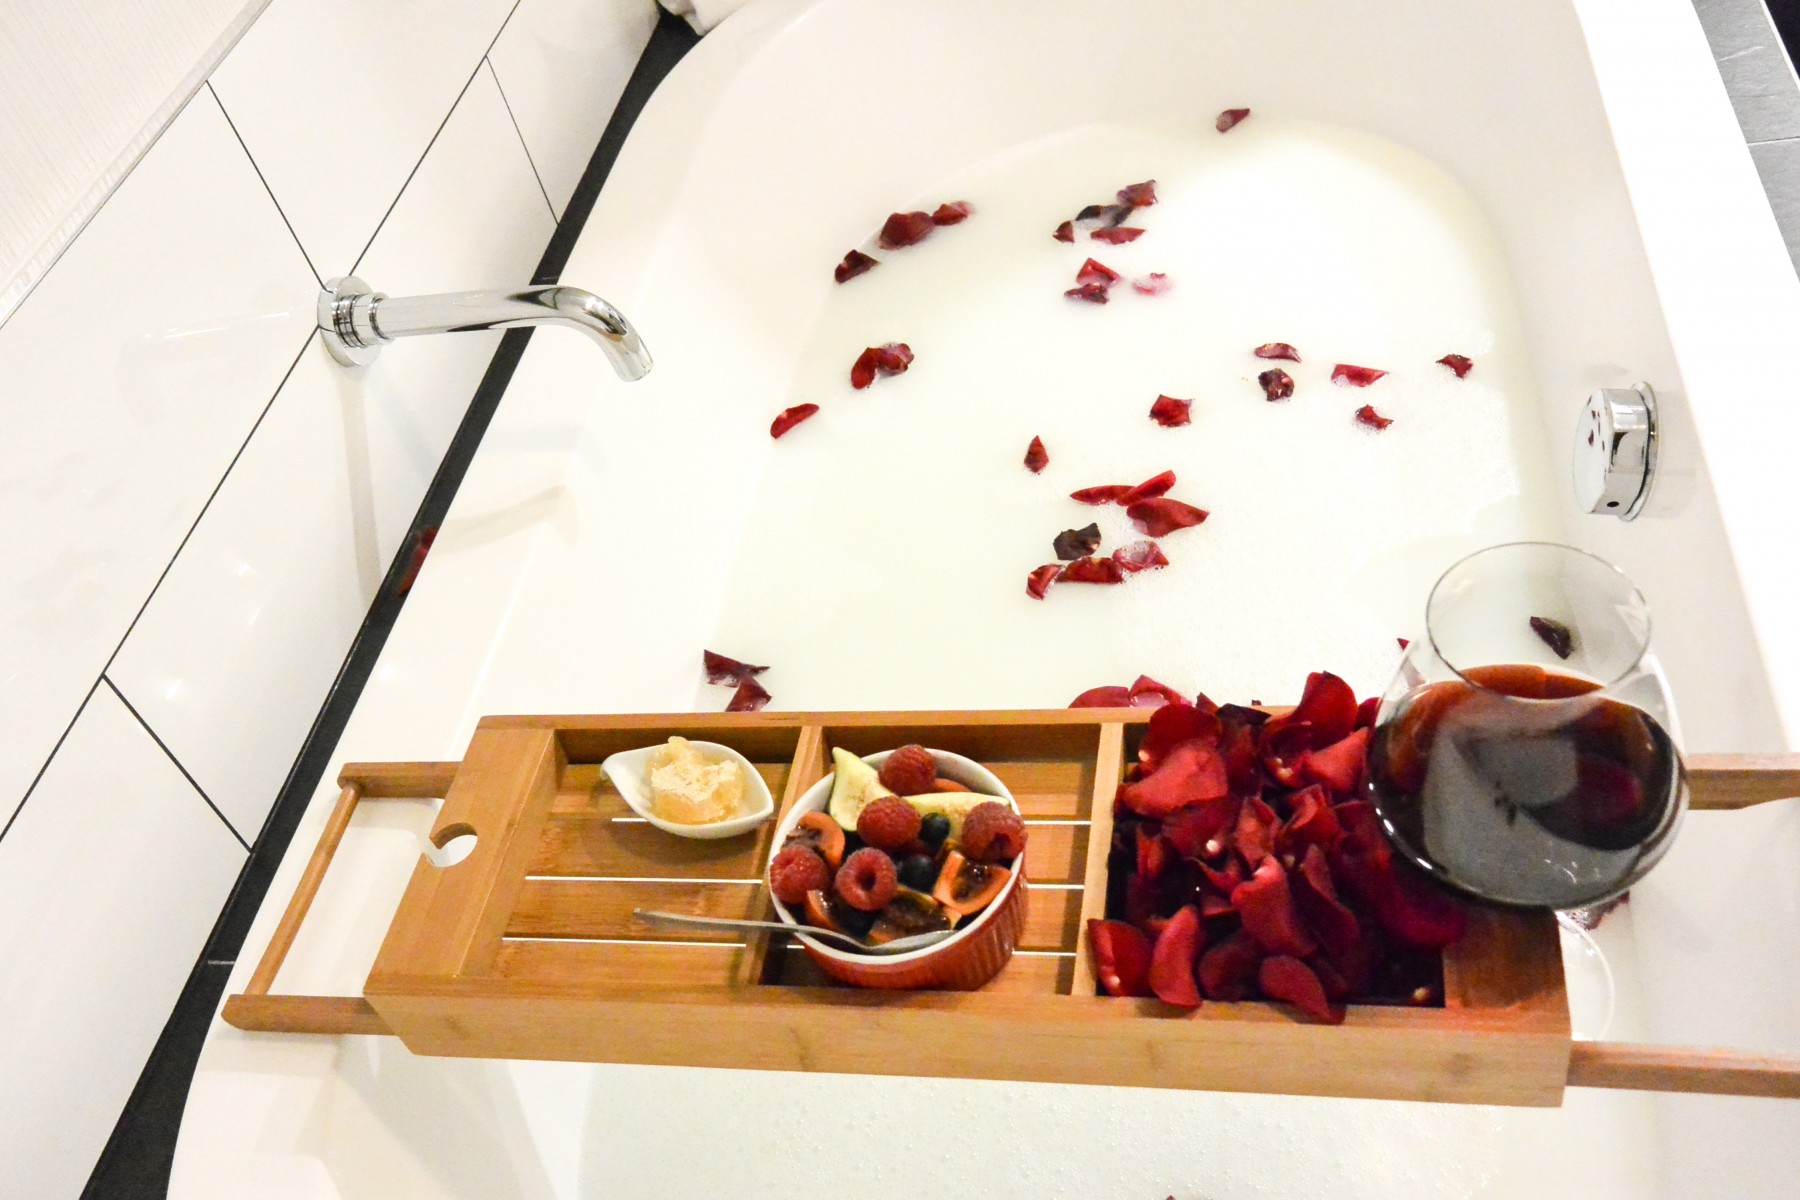 relax-with-our-inspired-by-her-bathing-ritual